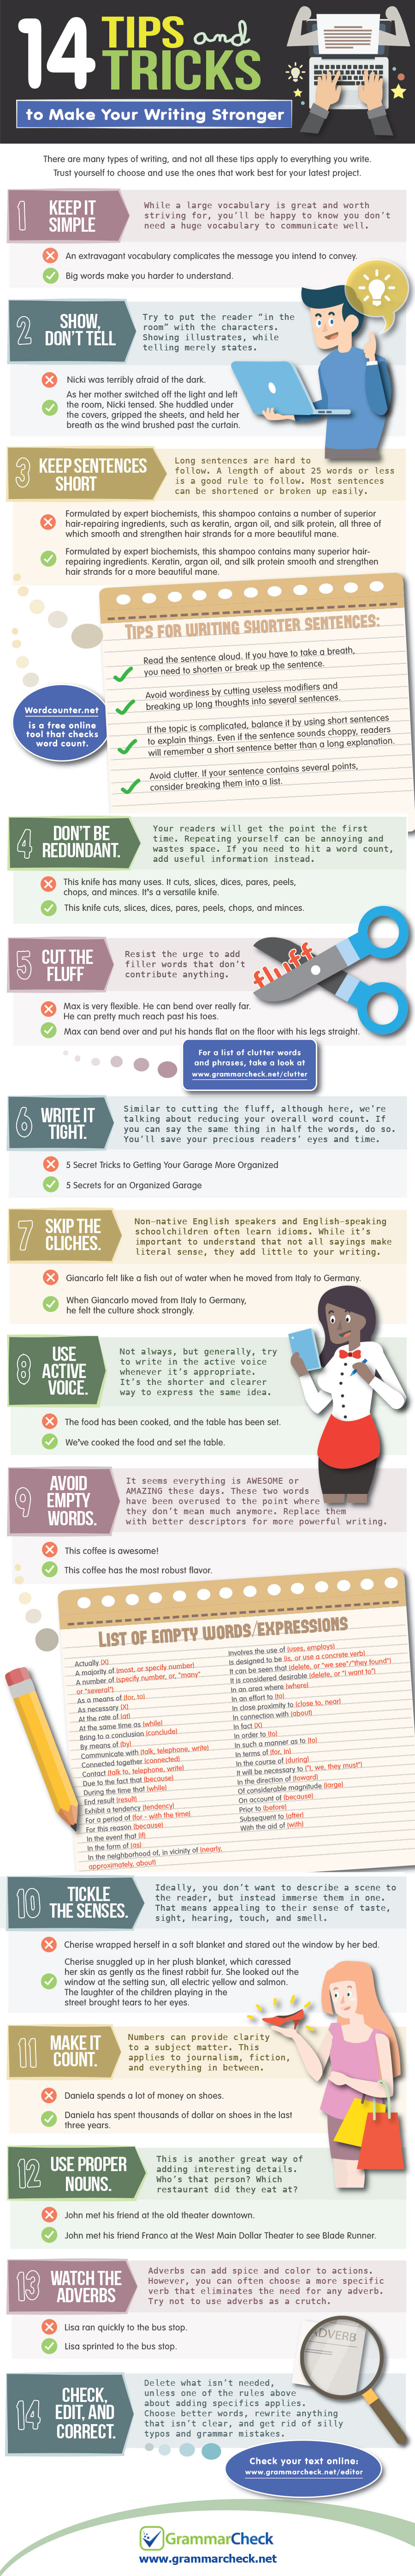 14 Tips and Tricks to Make Your Writing Stronger (Infographic)